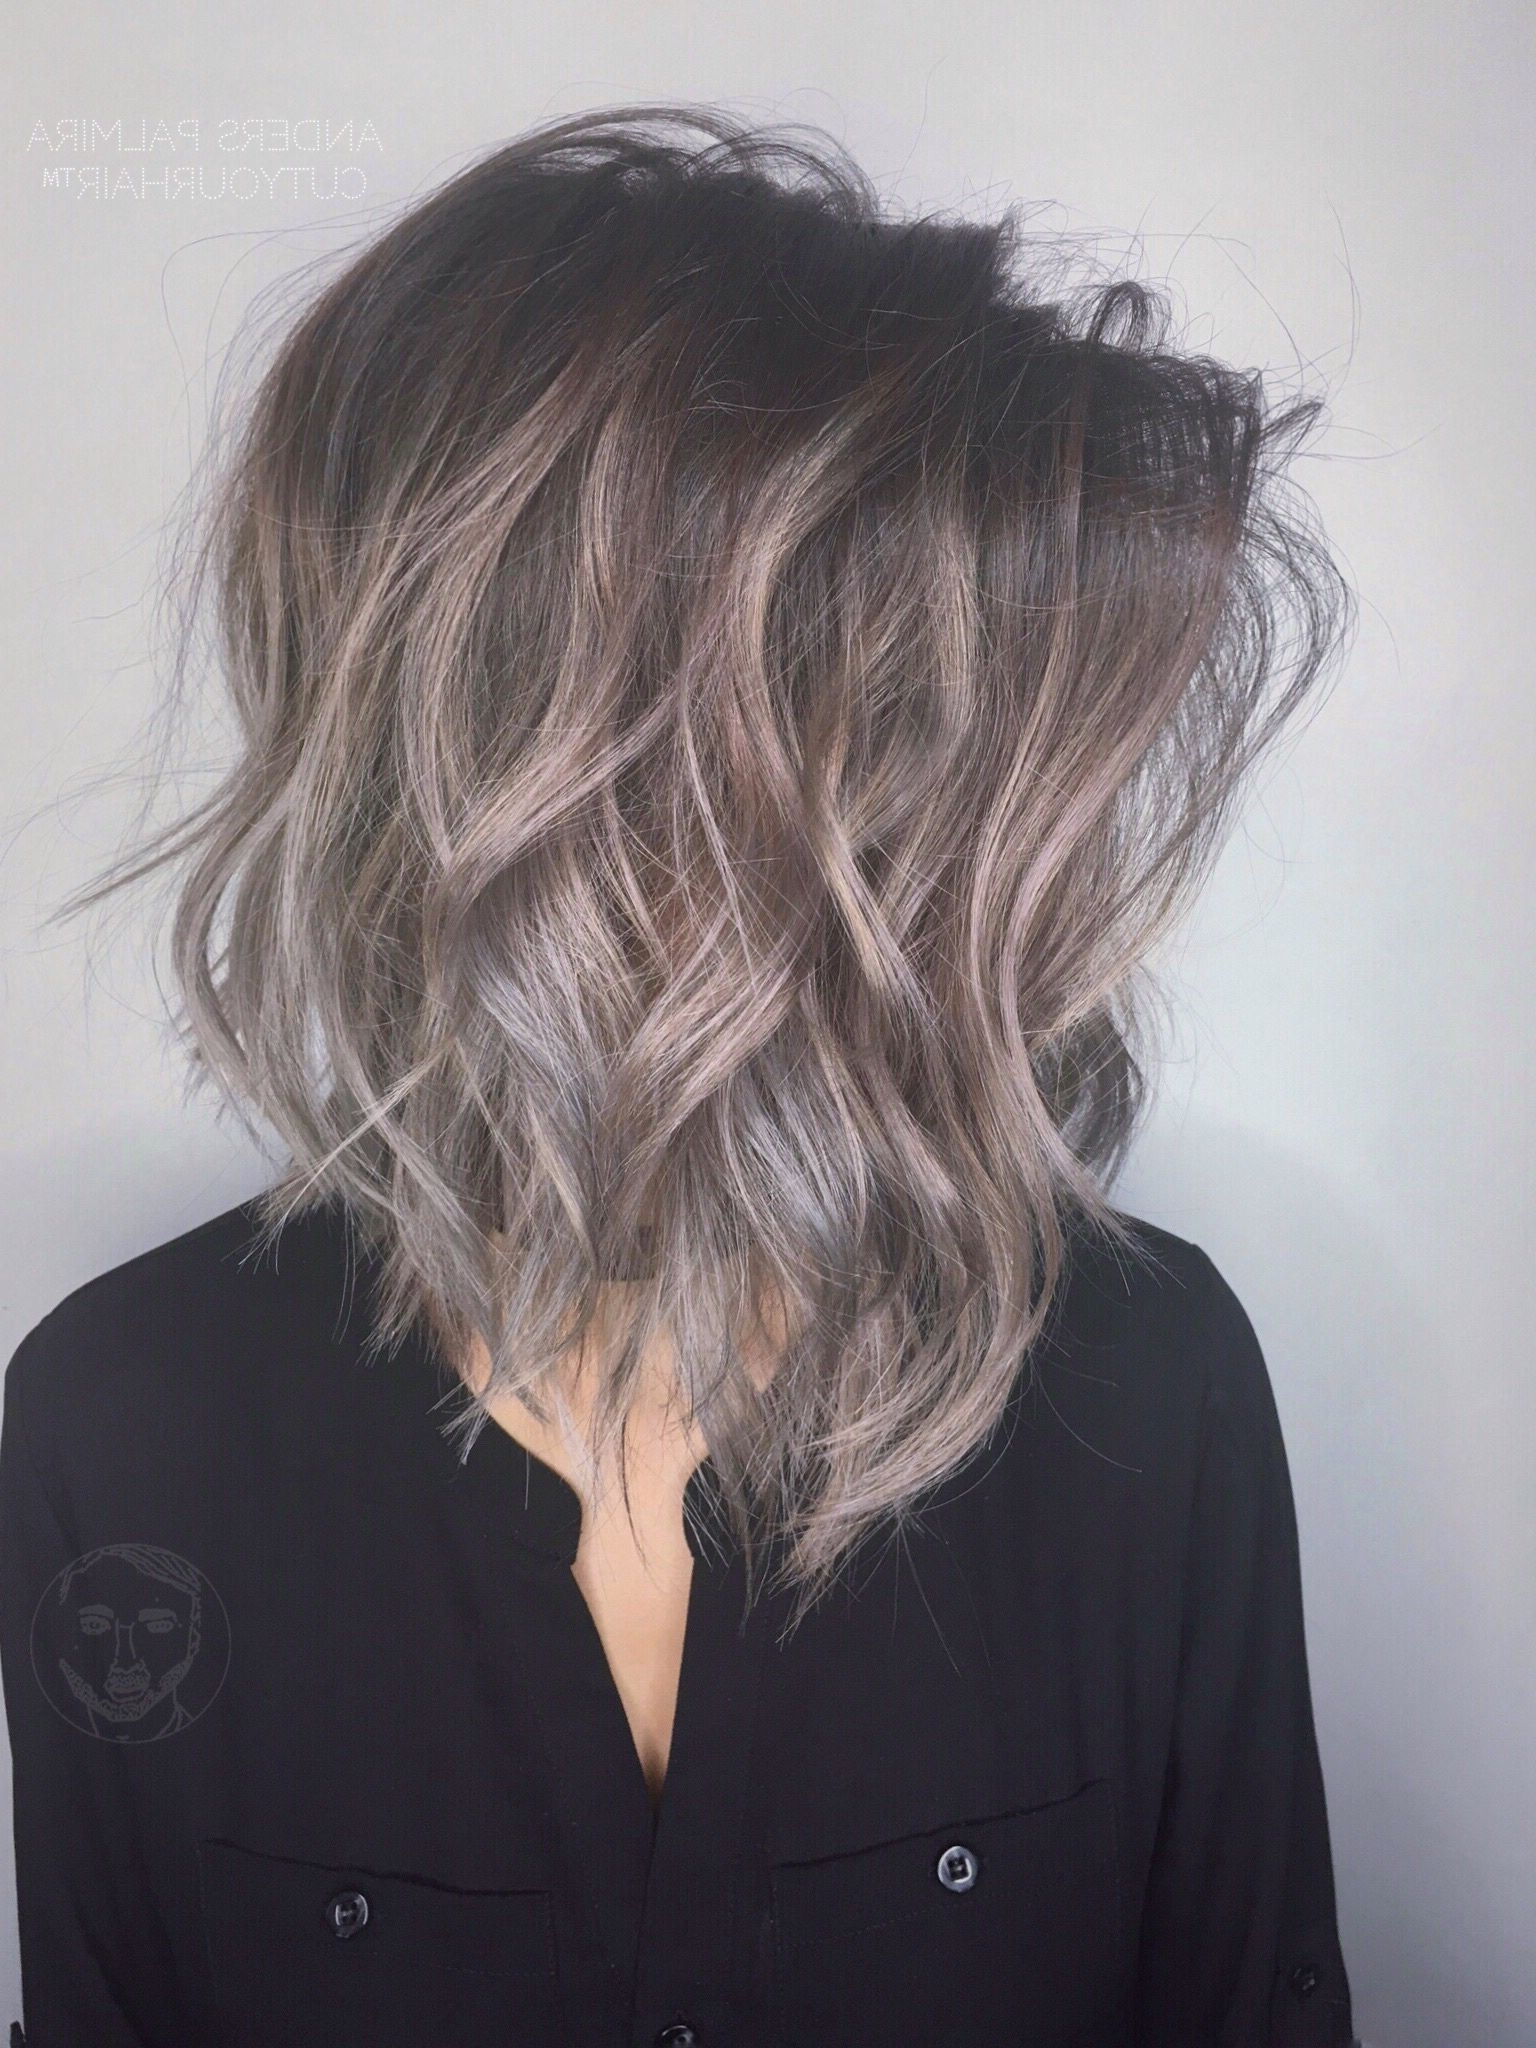 Well Known Tousled Shoulder Length Ombre Blonde Hairstyles With Aveda Wavy Long Blonde Bob Short Hair Beach Wave Medium Ideas Lob (View 19 of 20)